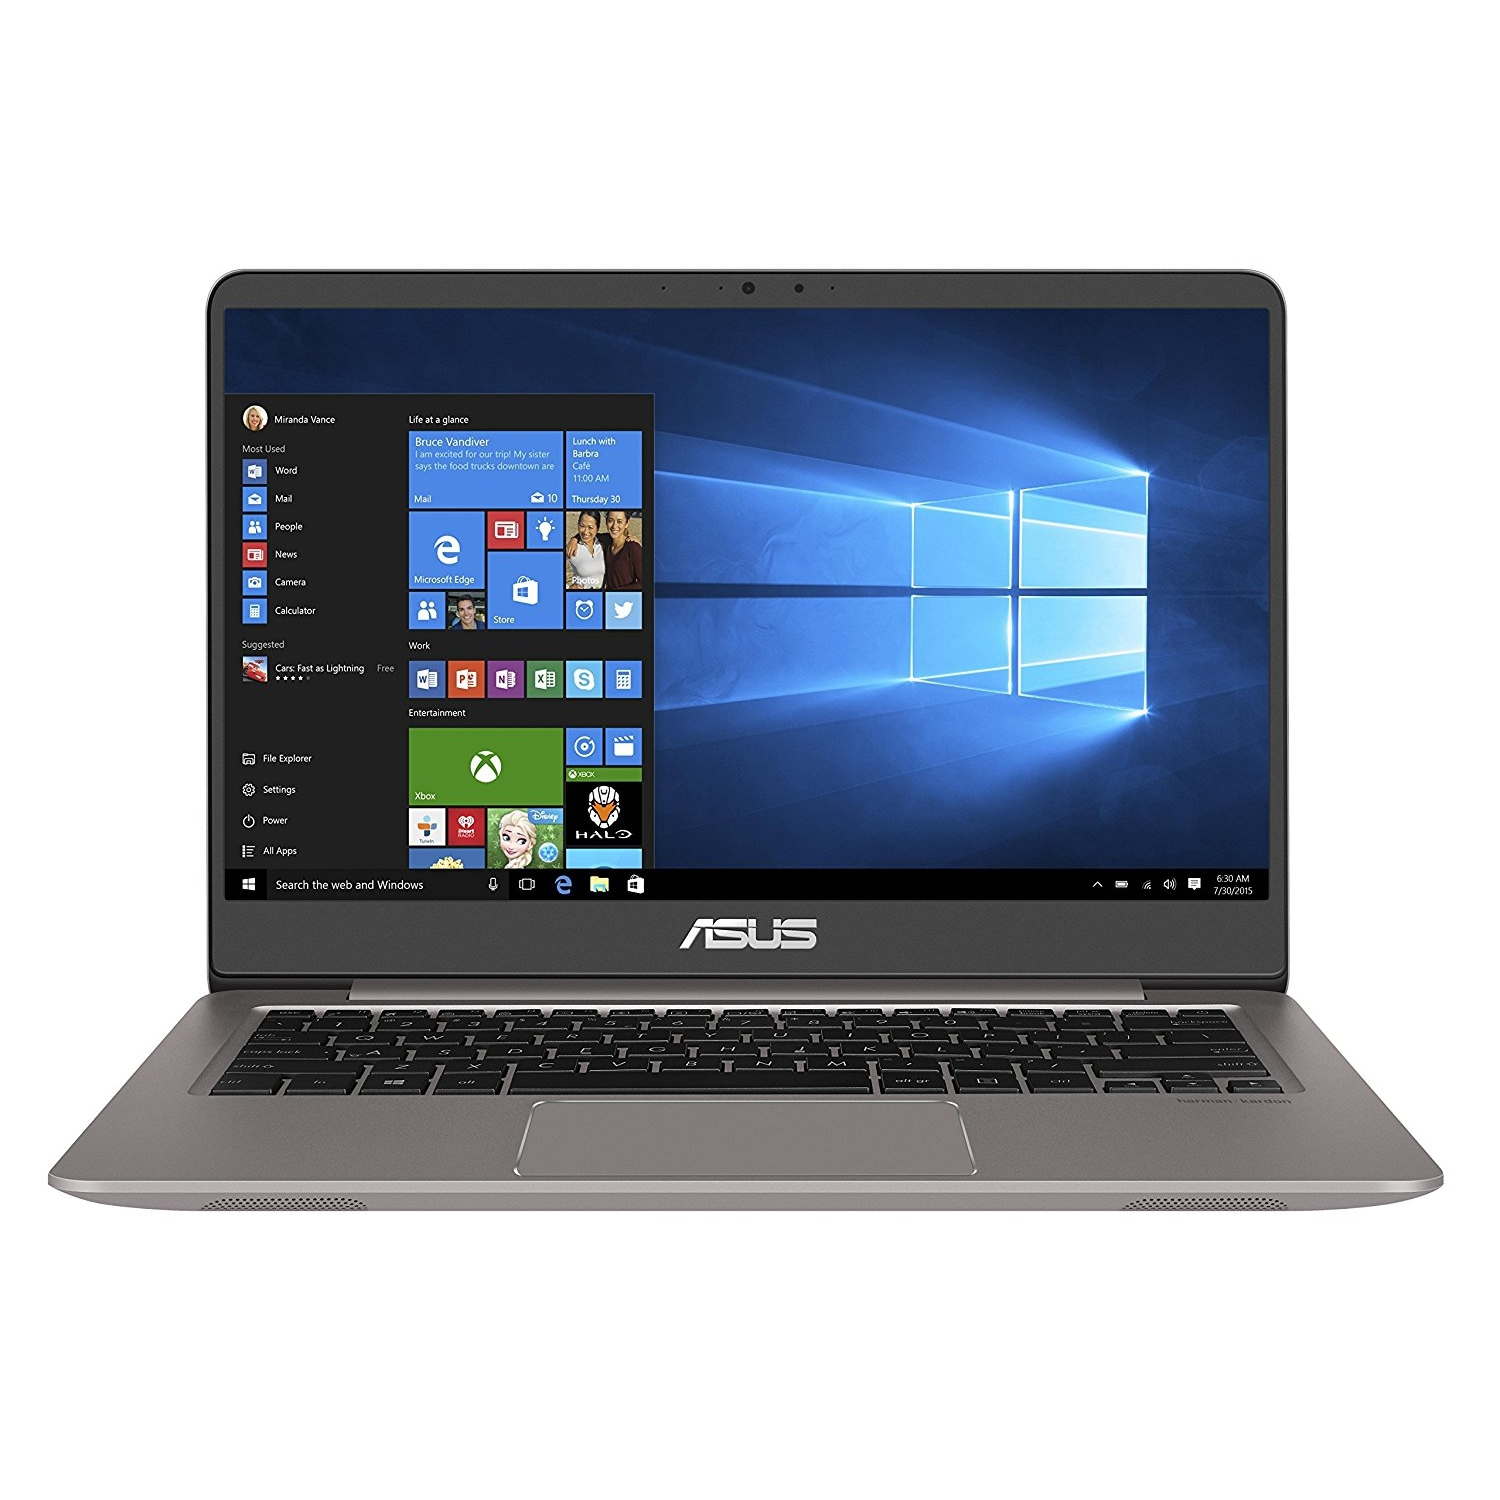 ASUS VIVOBOOK 15 X512UA REALTEK WLAN DRIVERS FOR WINDOWS XP